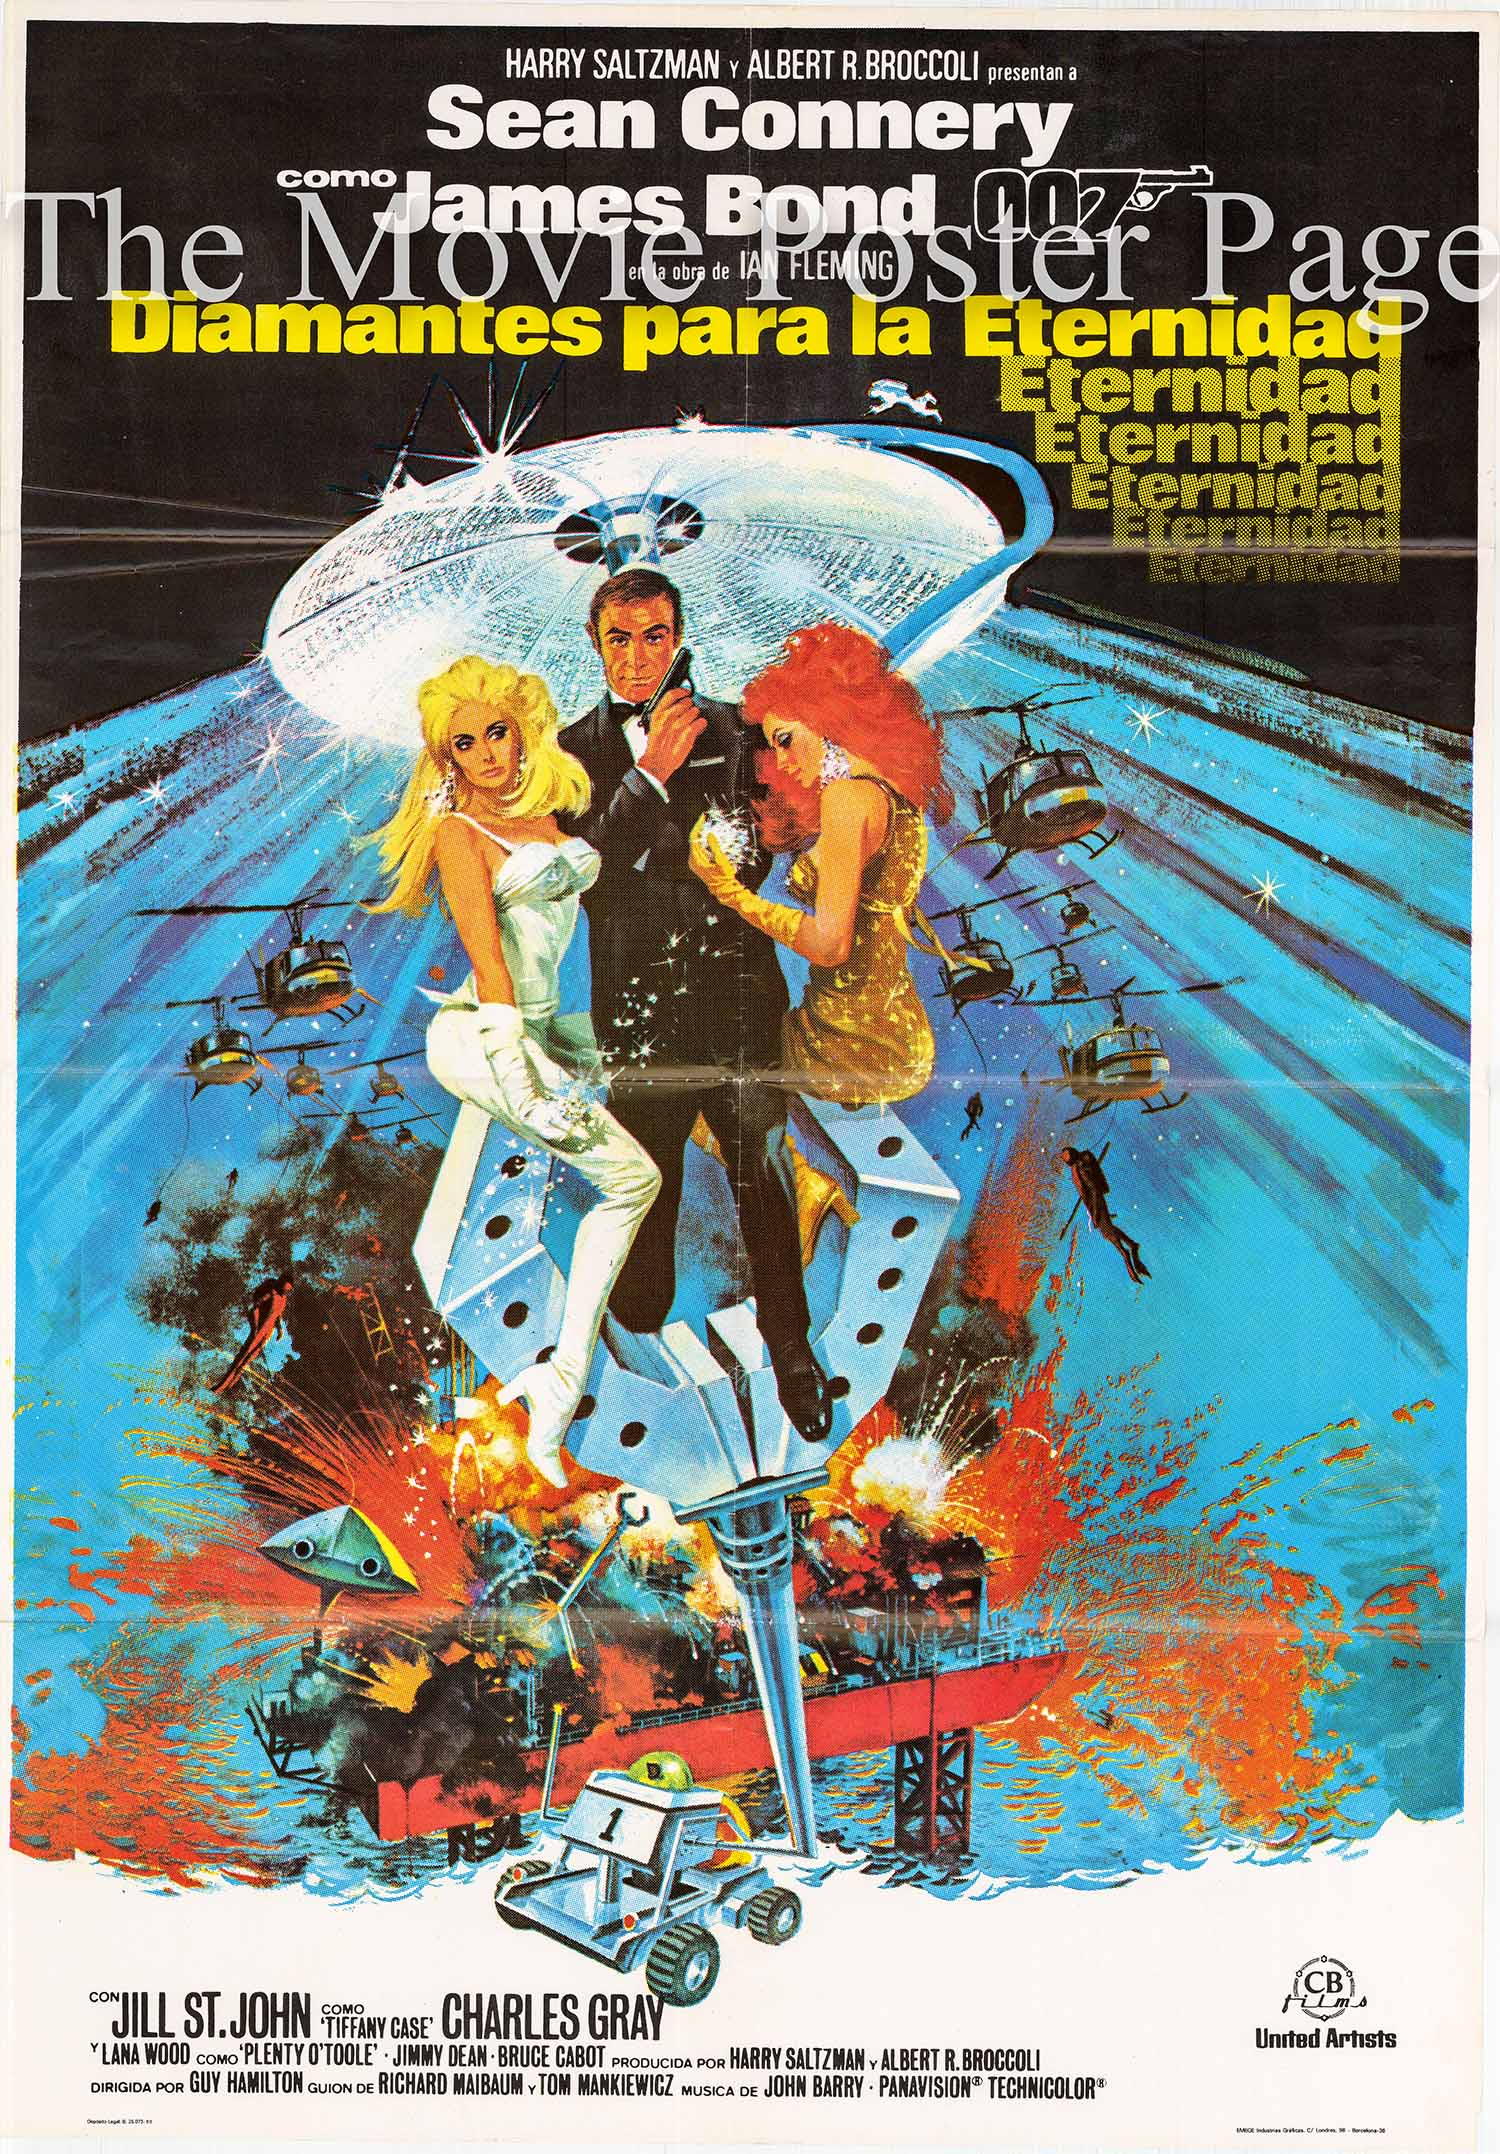 Pictured is a Spanish promotional poster for the 1971 Guy Hamilton film Diamonds are Forever starring Sean Connery as James Bond.